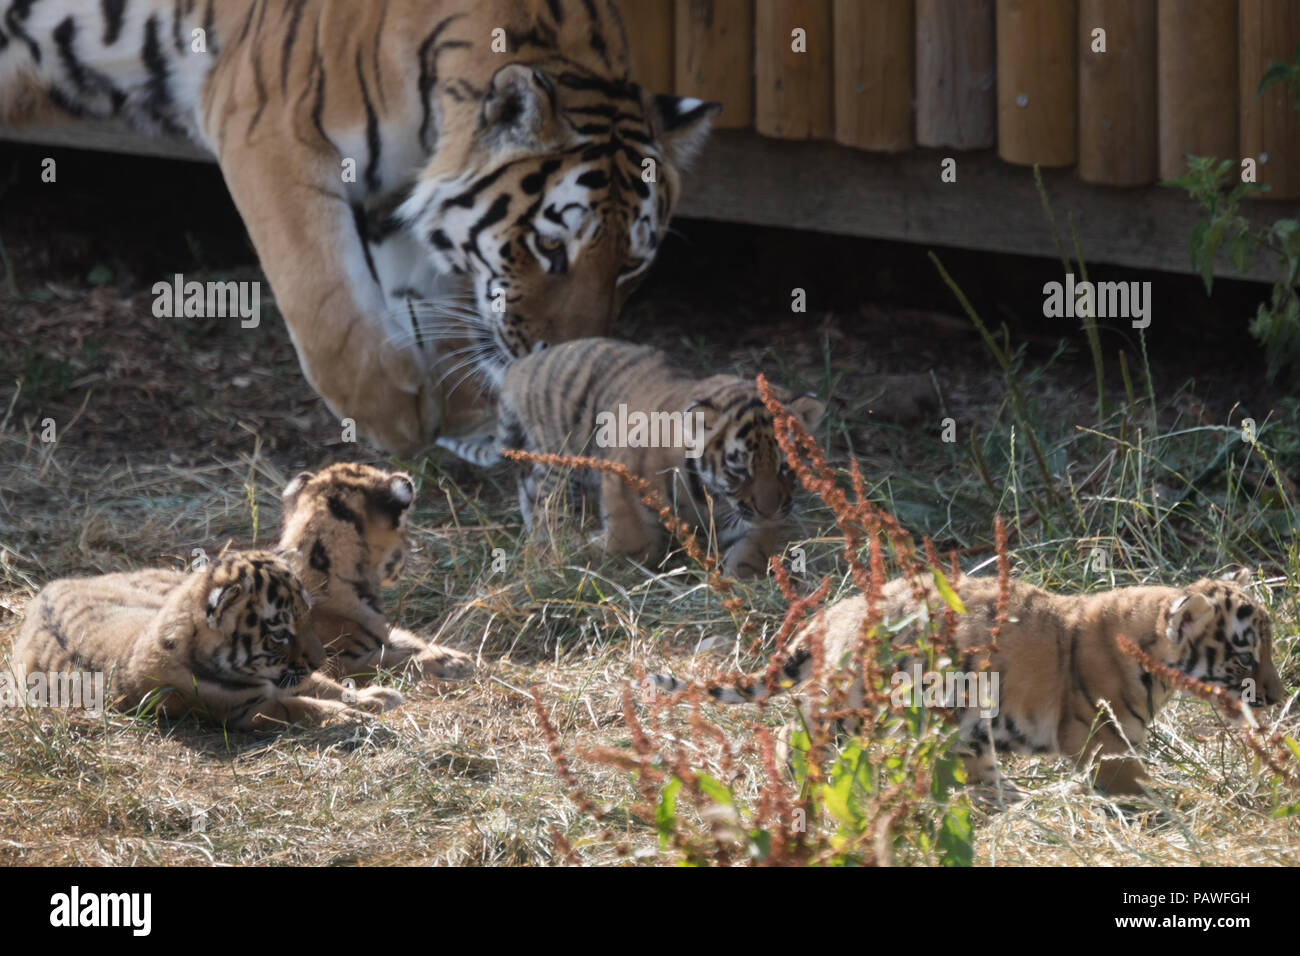 Whipsnade, UK. 25th July 2018. Four endangered Amur tiger cubs, born a month ago at ZSL Whipsnade Zoo, seen playing outside their den. Credit: amanda rose/Alamy Live News - Stock Image